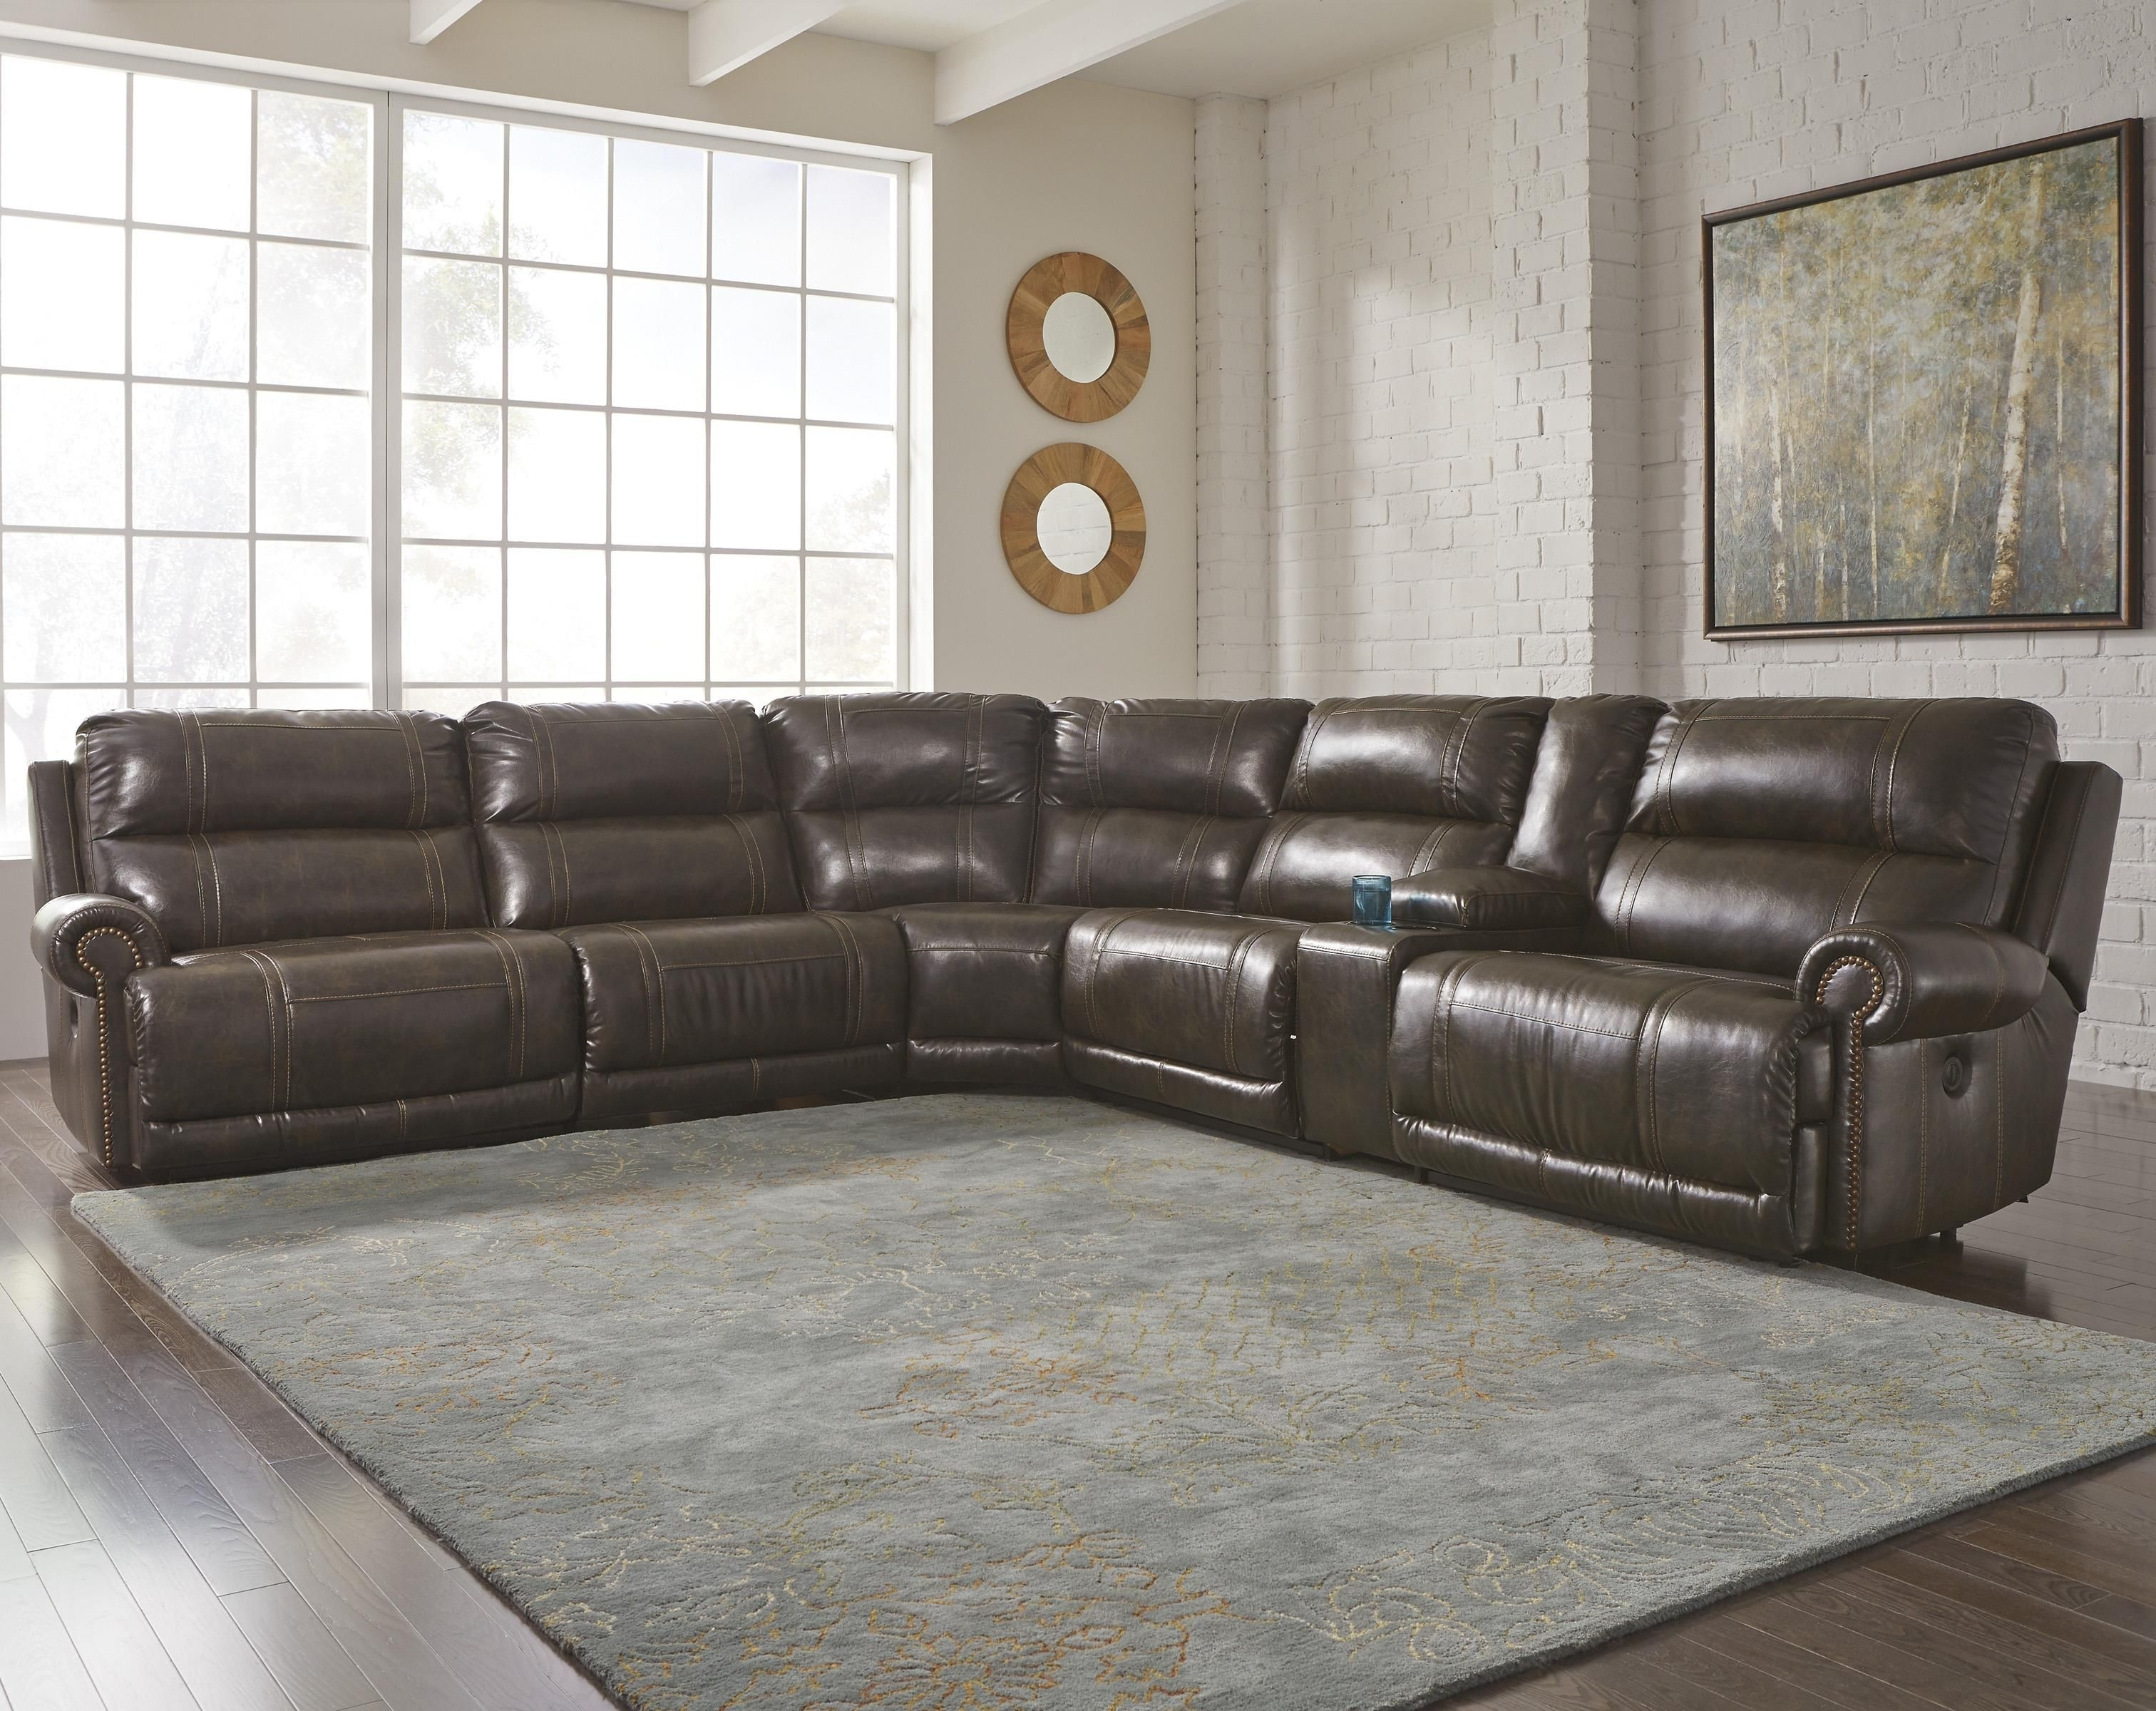 Trendy Eau Claire Wi Sectional Sofas Regarding Dak Durablend® 6 Piece Reclining Sectionalsignature Design (View 14 of 20)